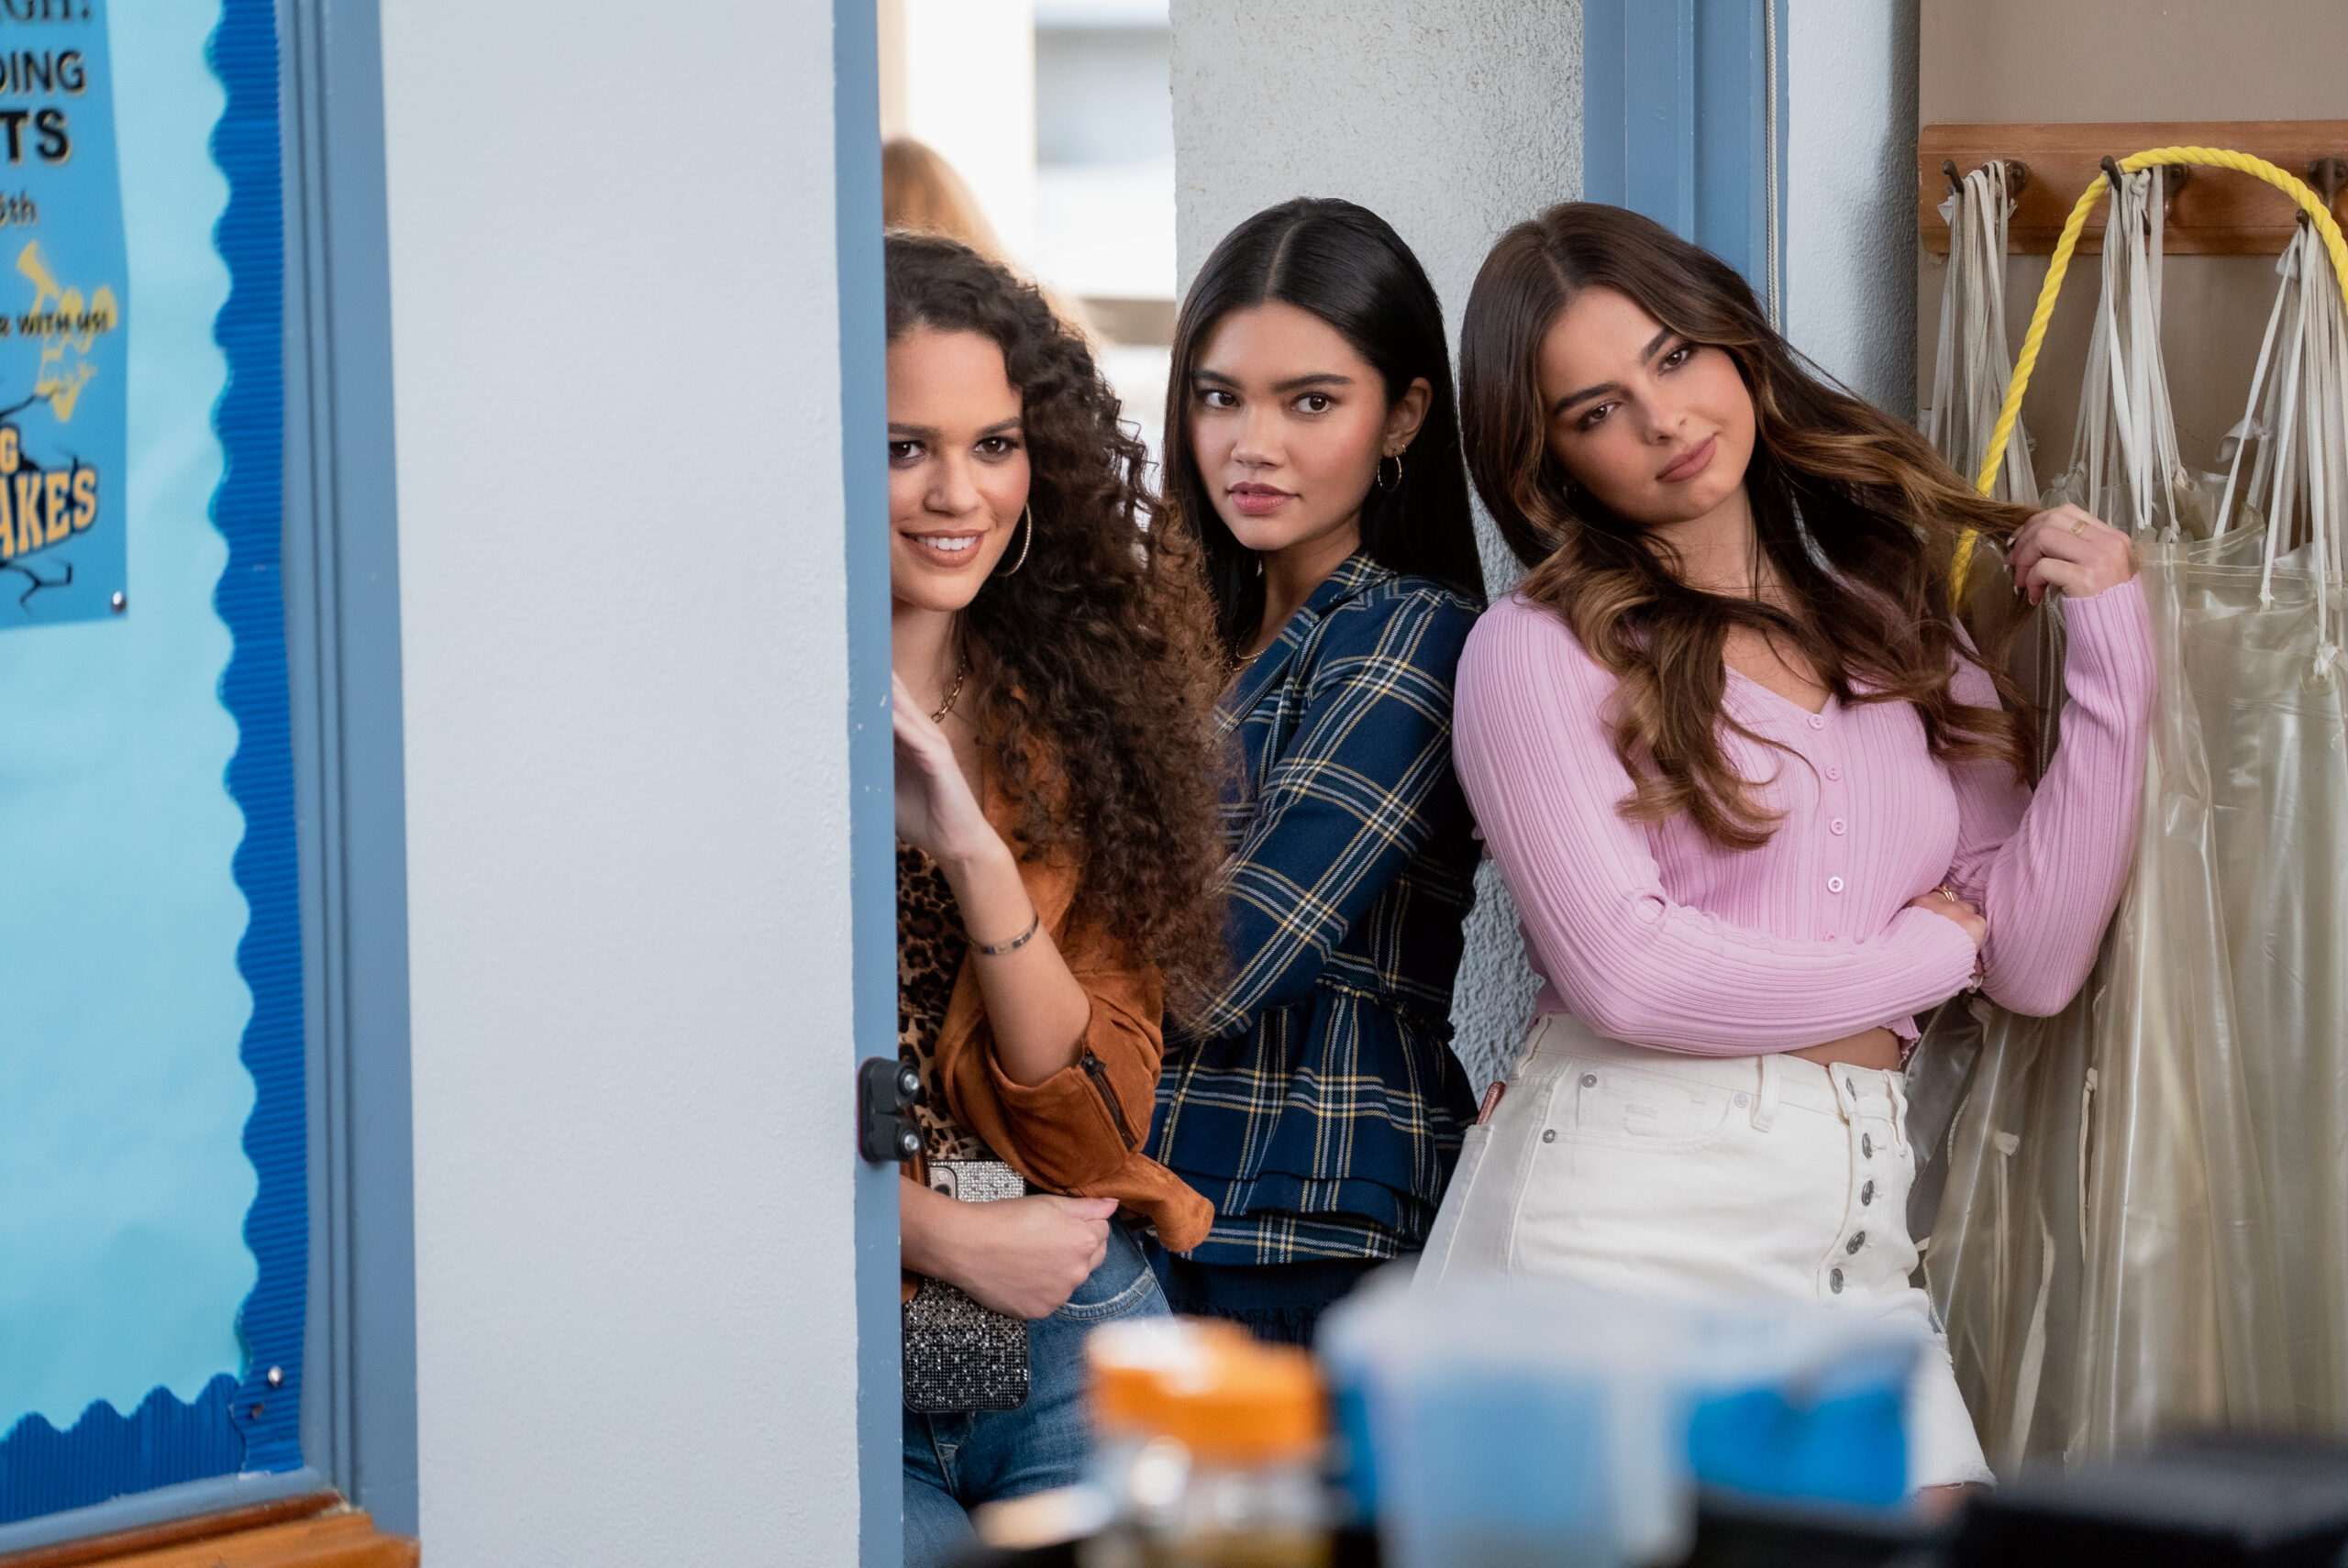 He's All That. Madison Pettis as Alden, Manneepat Molloy as Quinn, Addison Rae Easterling as Padgett Sawyer in Hes All That. Cr. Kevin Estrada/NETFLIX © 2020